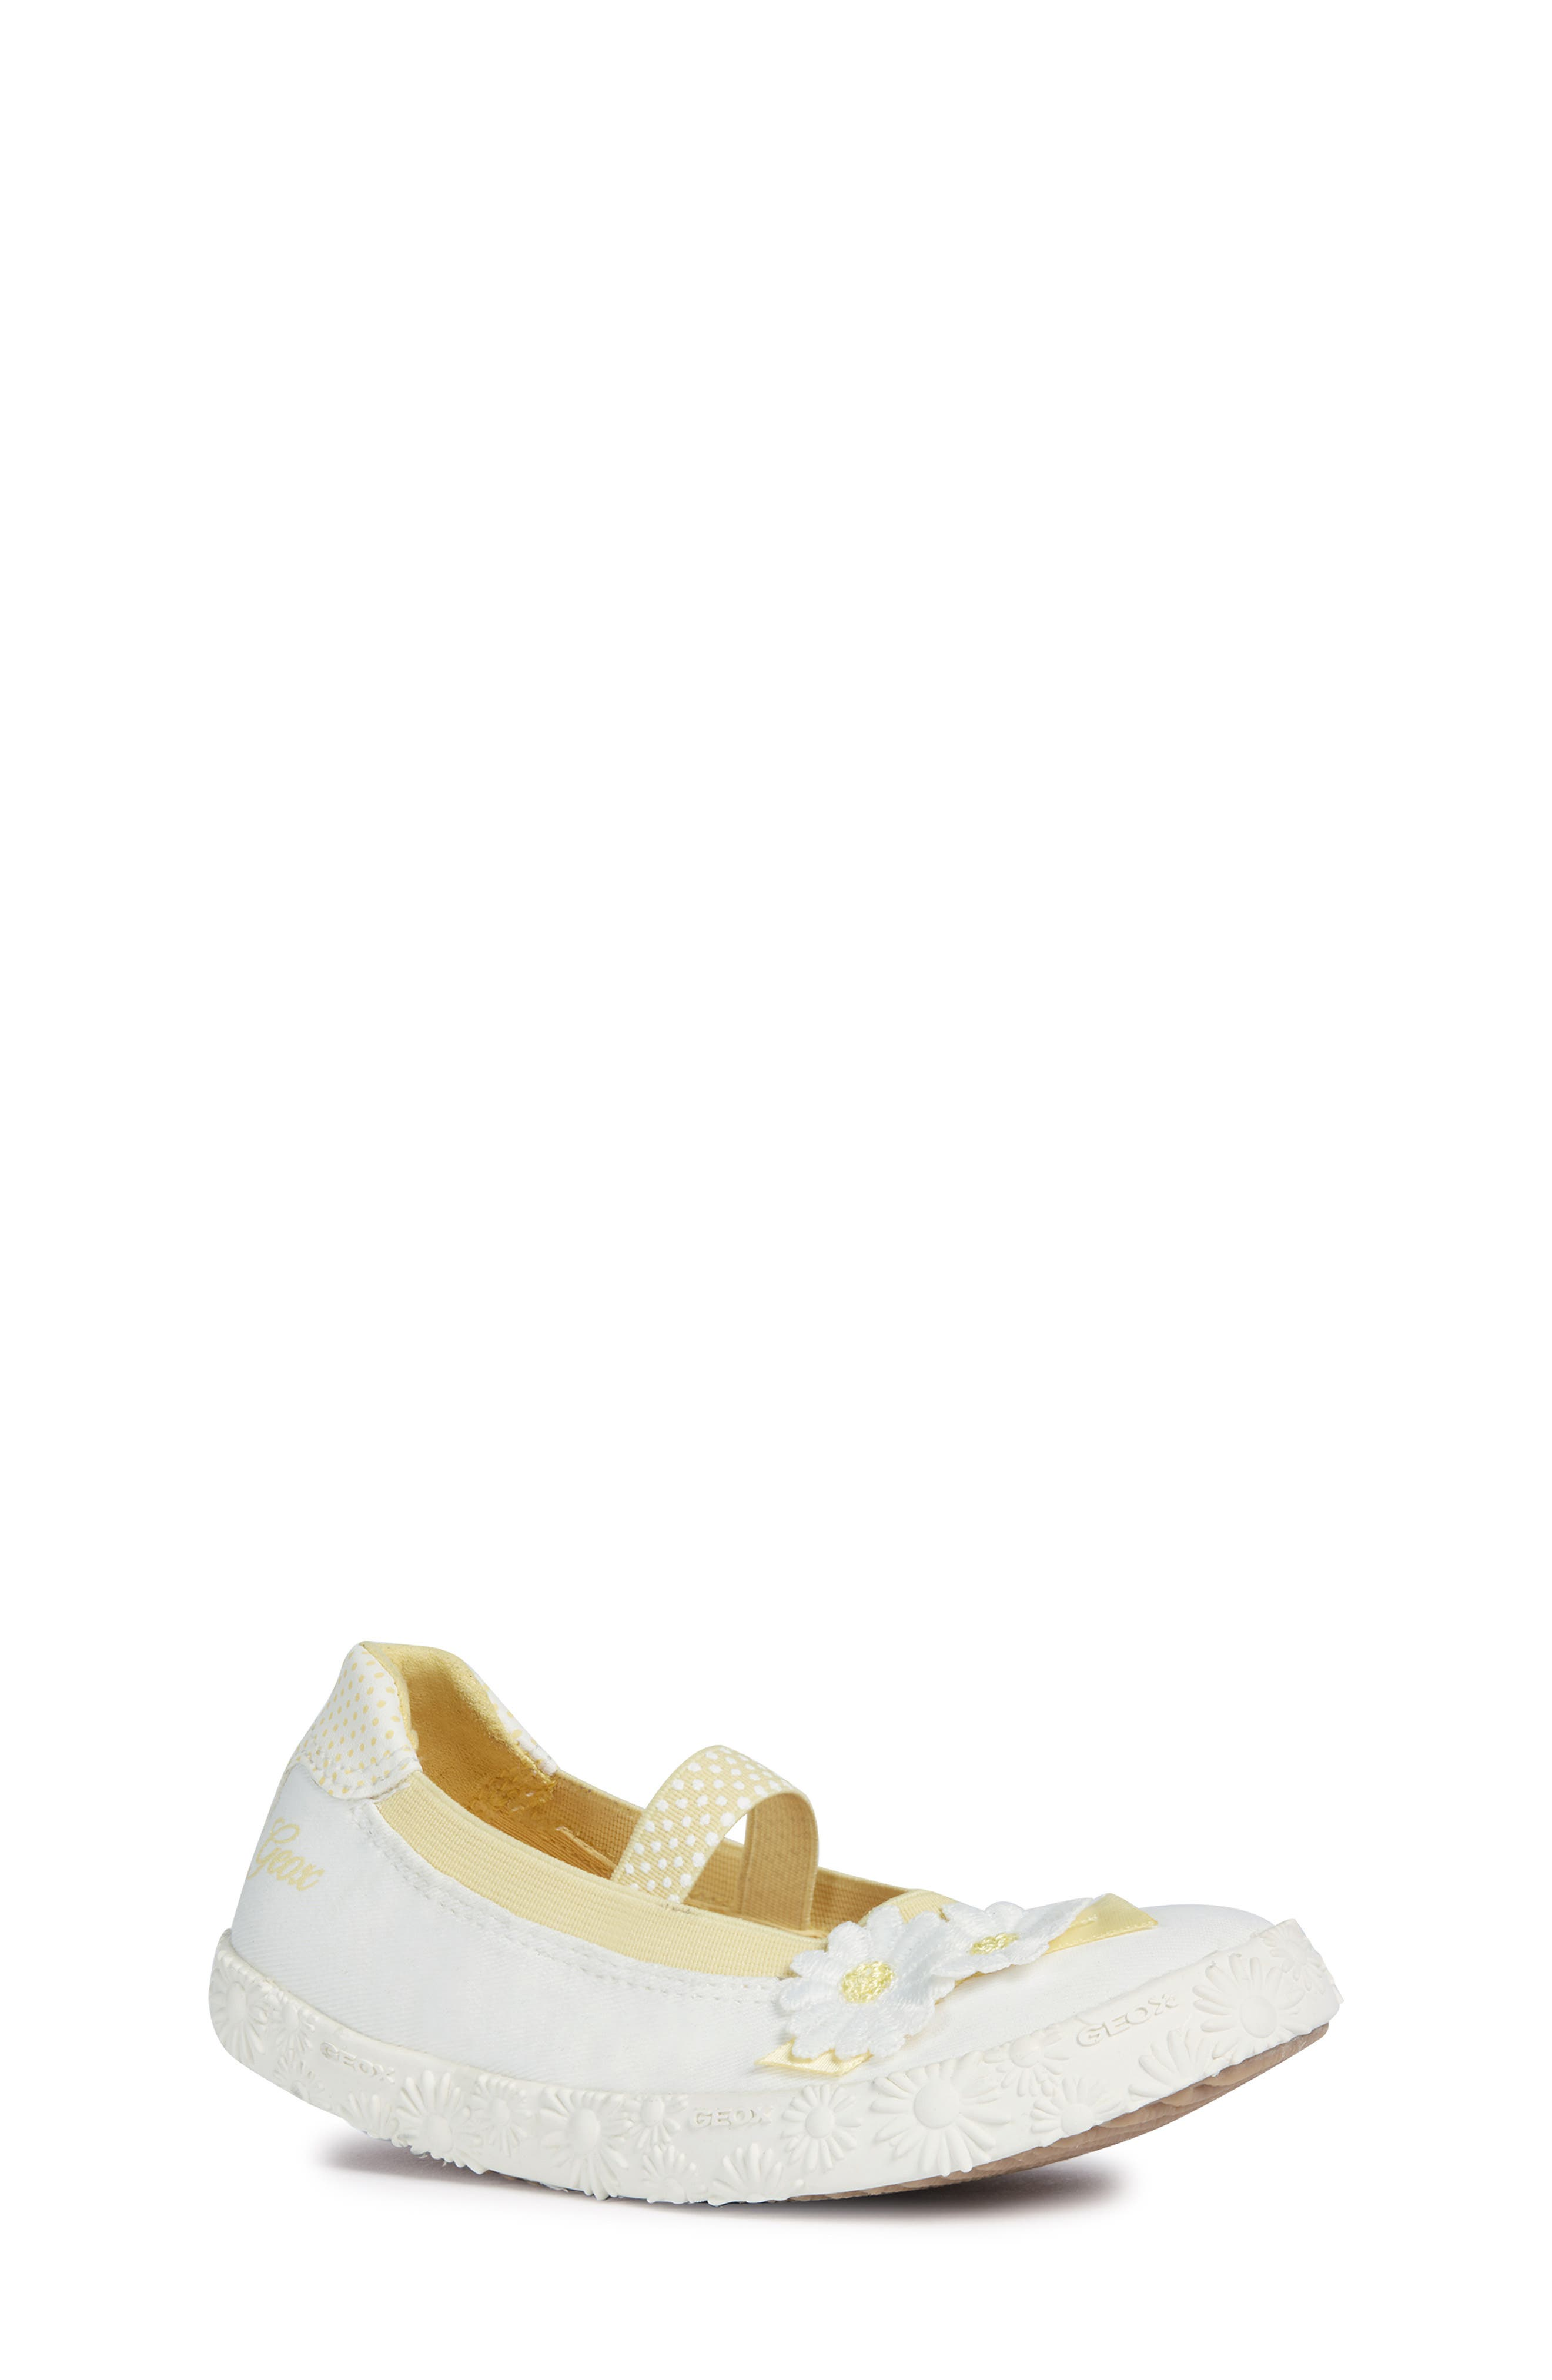 GEOX Kilwi Daisy Mary Jane Sneaker, Main, color, WHITE